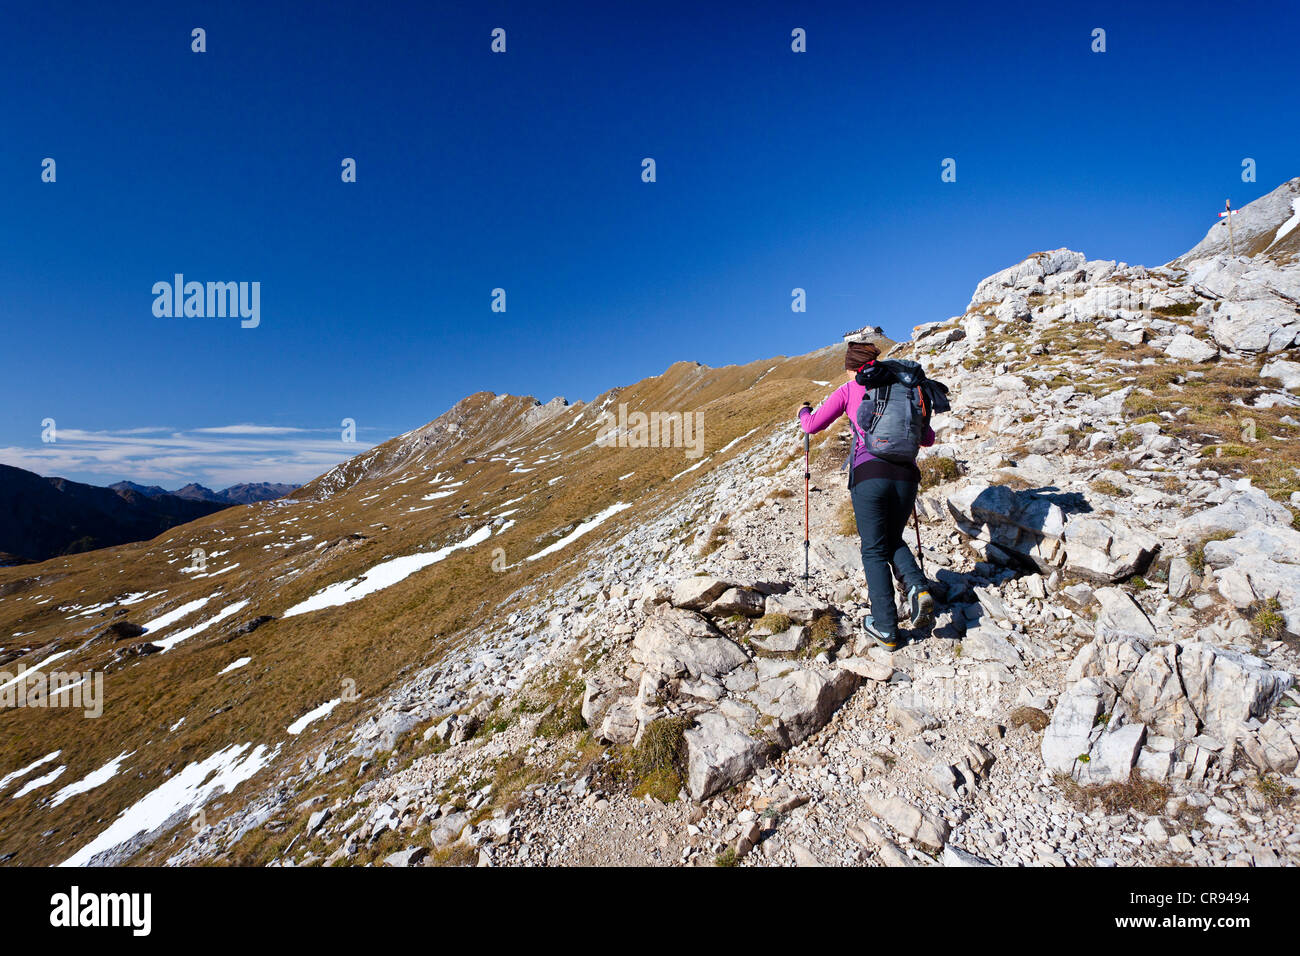 Hiker during the ascent to Bepi Zac climbing route in the San Pellegrino Valley above the San Pellegrino Pass, Dolomites Stock Photo